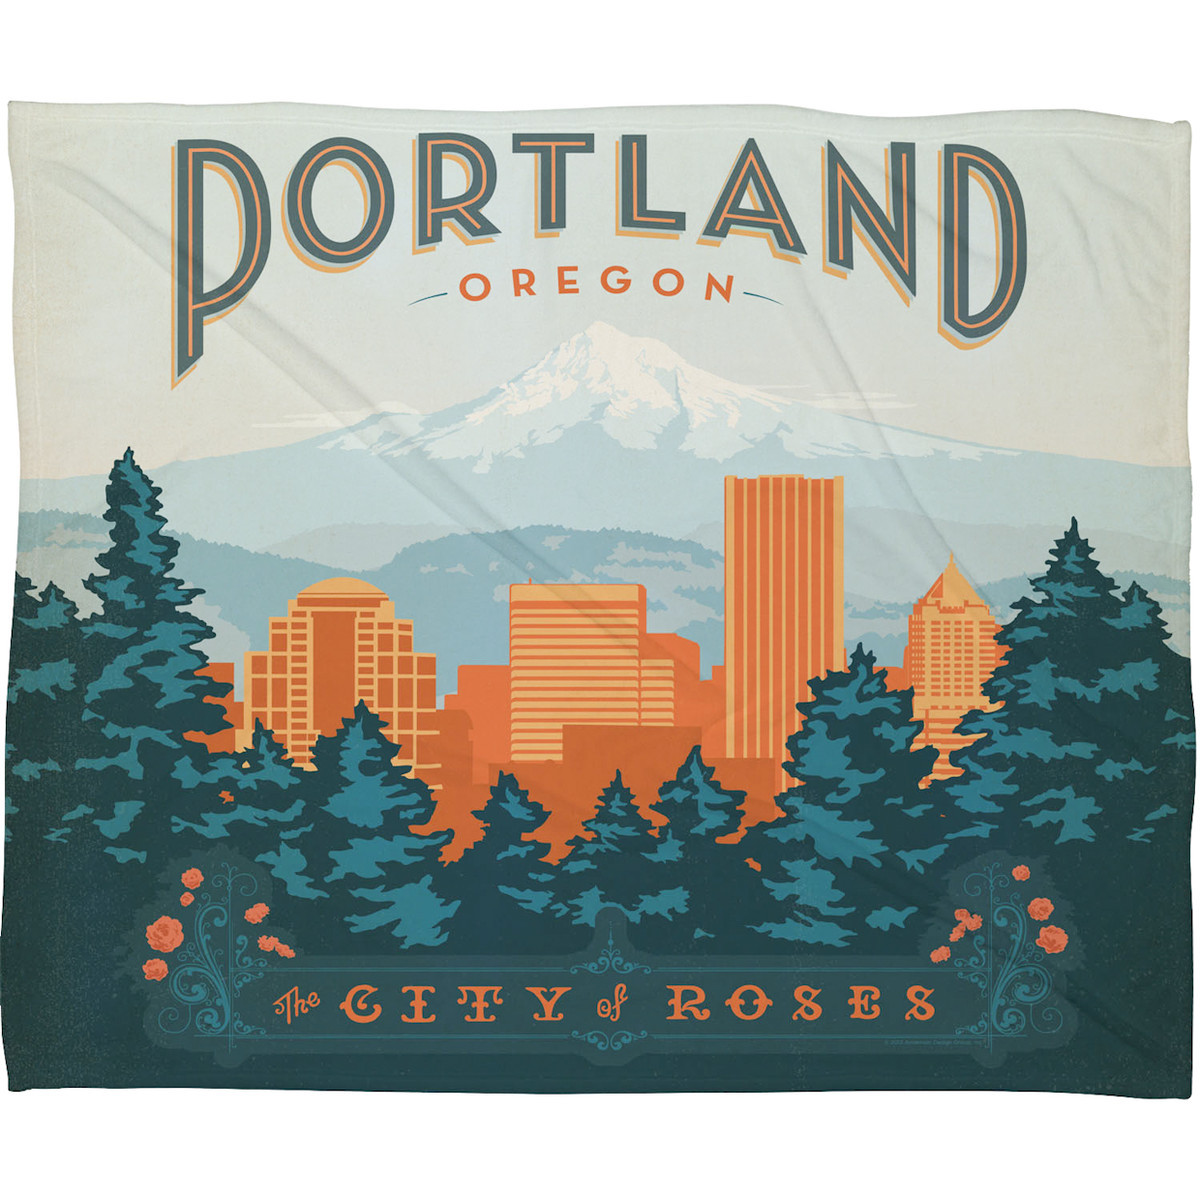 Portland Fleece Throw 80x60 @denydesigns, 30% off now featured on Fab.Fab.comTurn your couch or chair into a retro love letter to Portland, Oregon. Featuring a print by Anderson Design Group that harkens back to the lofty U.S. travel spirit of the early 1900s, this fleece throw boasts rich colors and a nostalgia-inducing image.